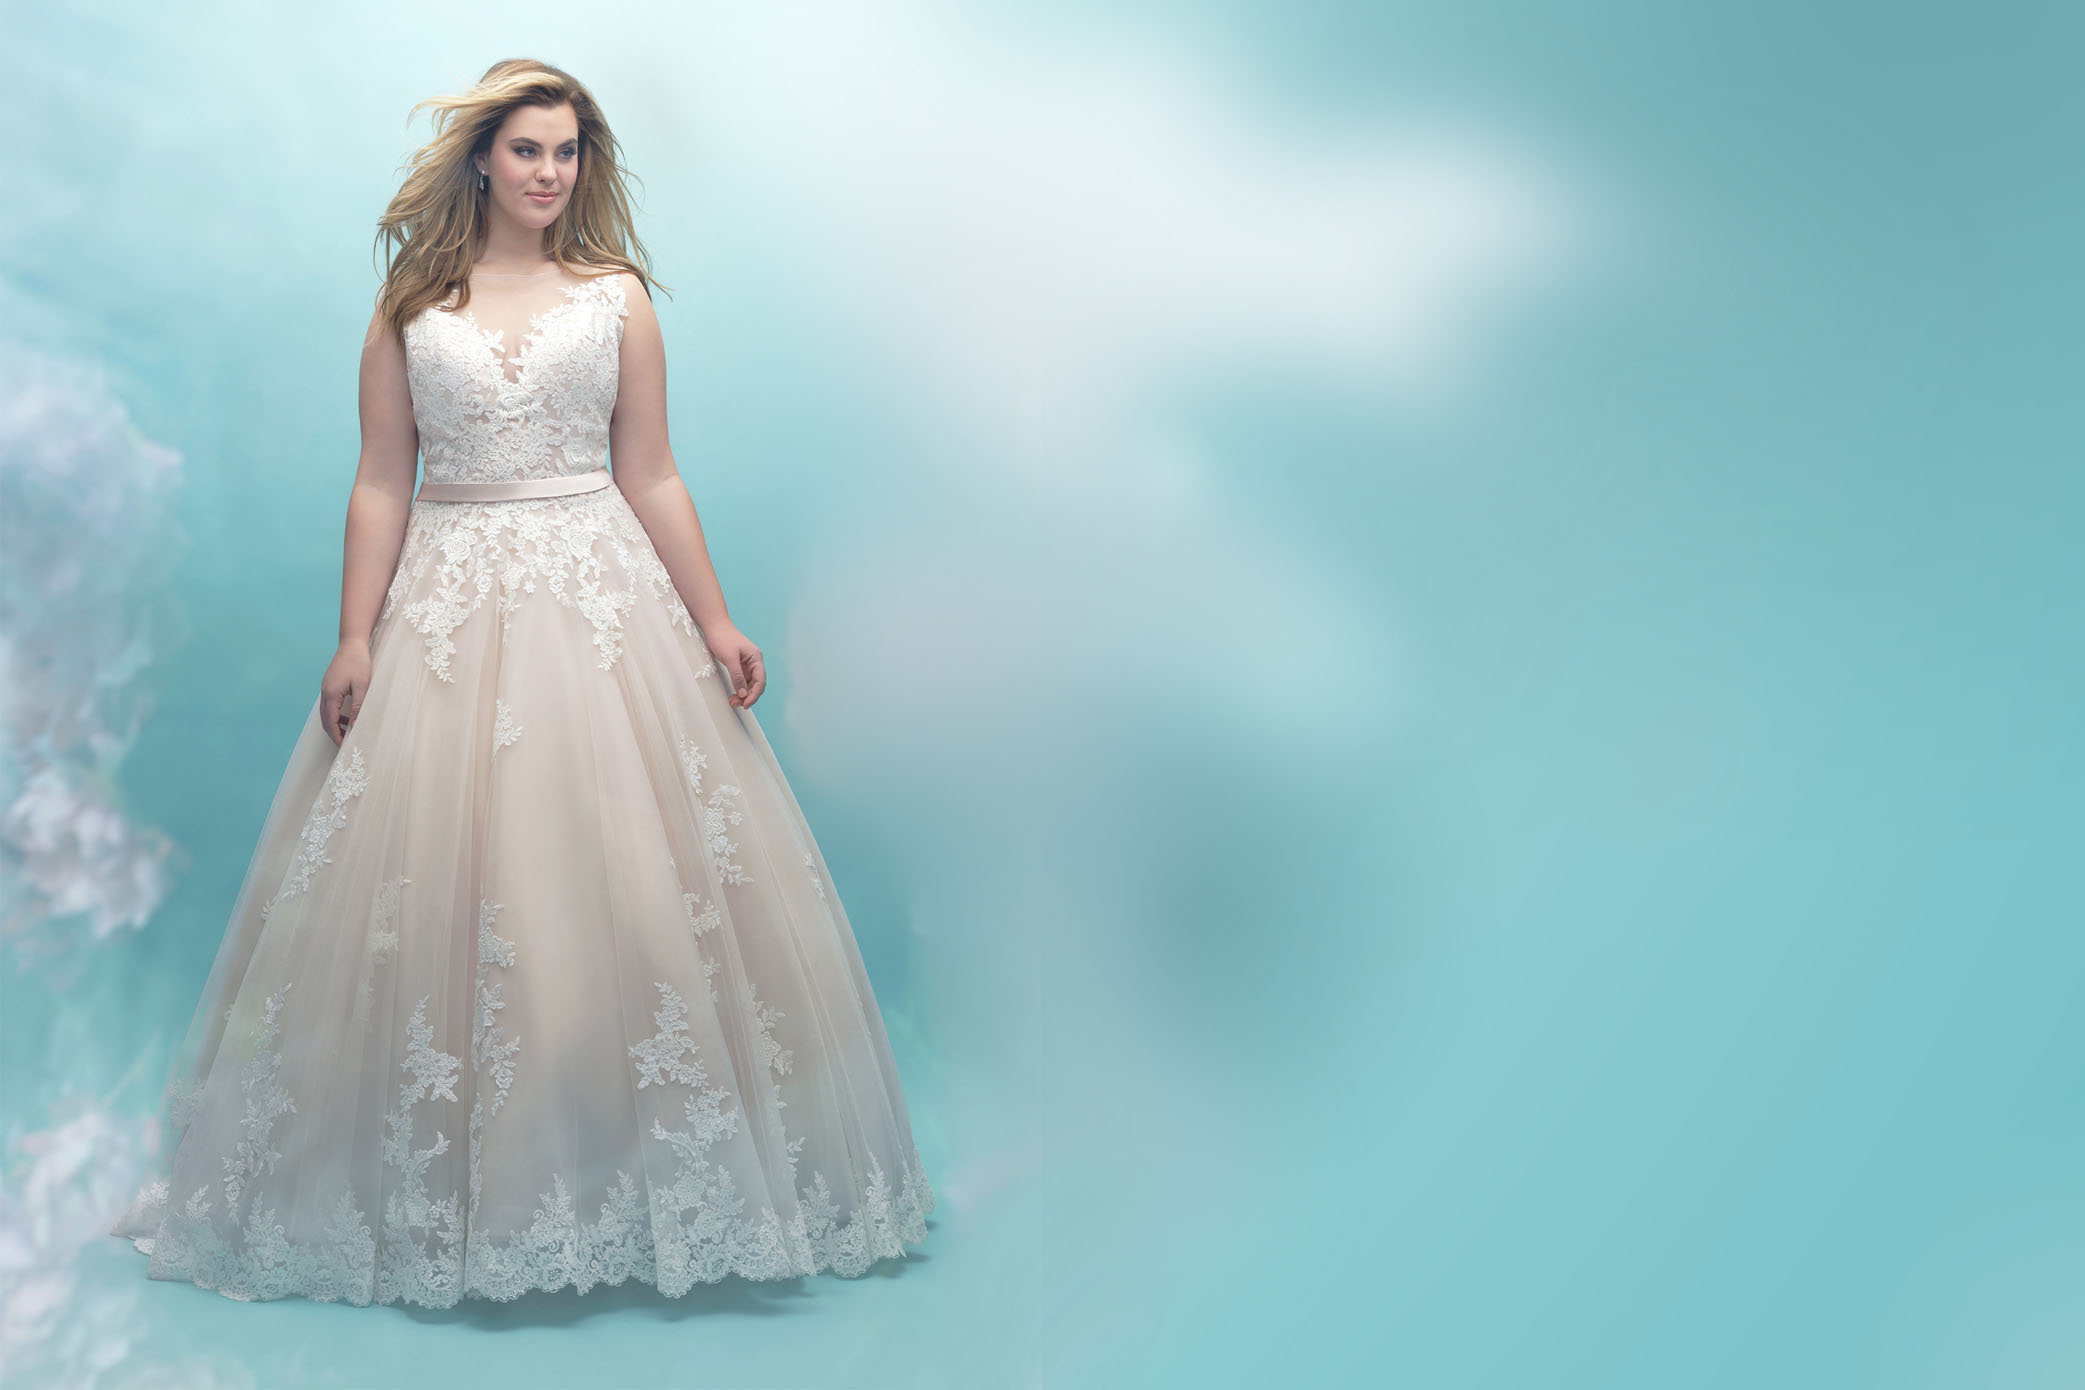 Wedding Dresses Bridesmaid Ma Carr Bridal Buffalo Rochester And Wny 716 667 2502